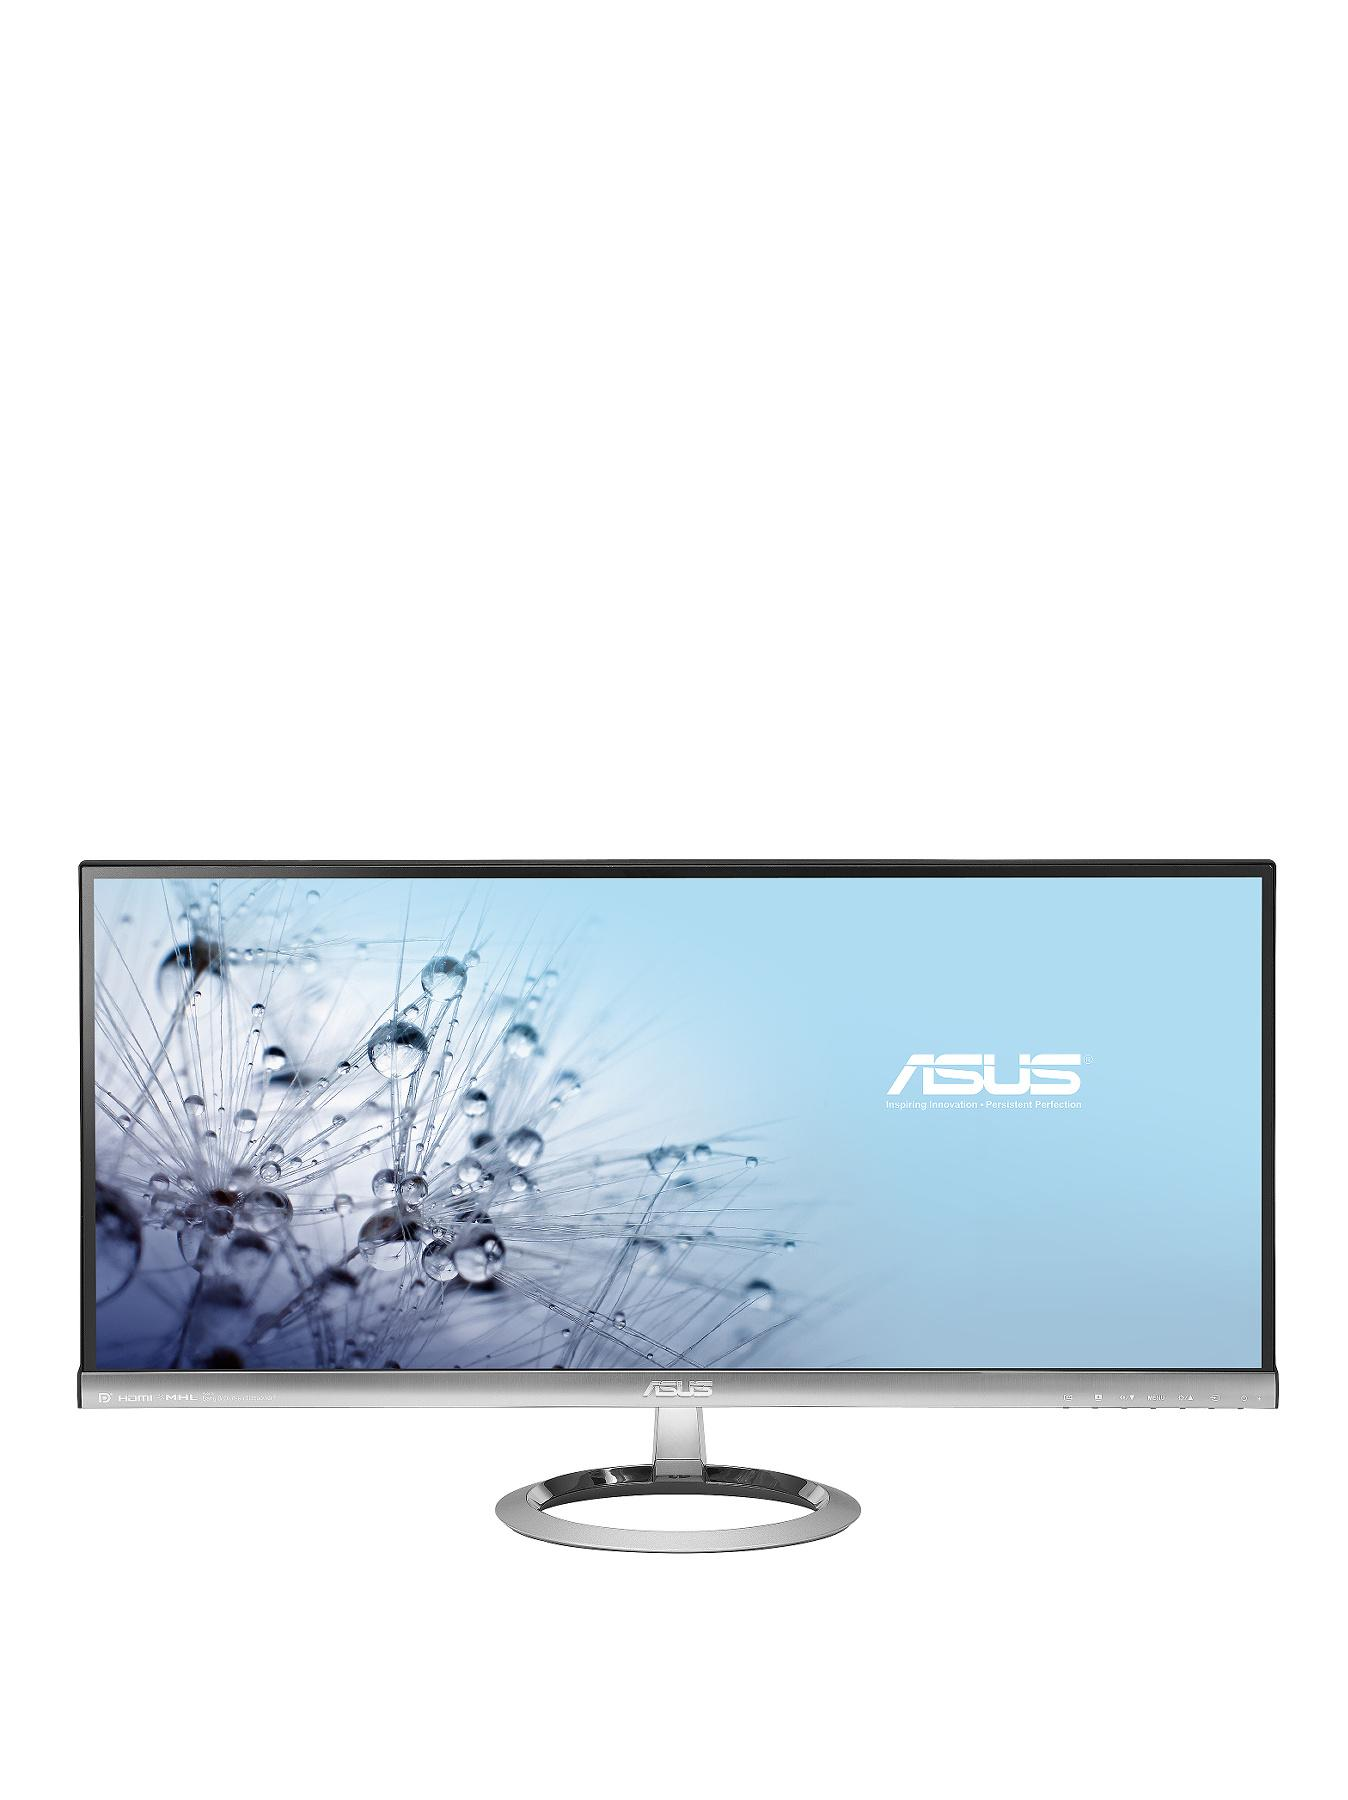 Asus MX299Q 29 inch Widescreen AH-IPS LED Multimedia Monitor